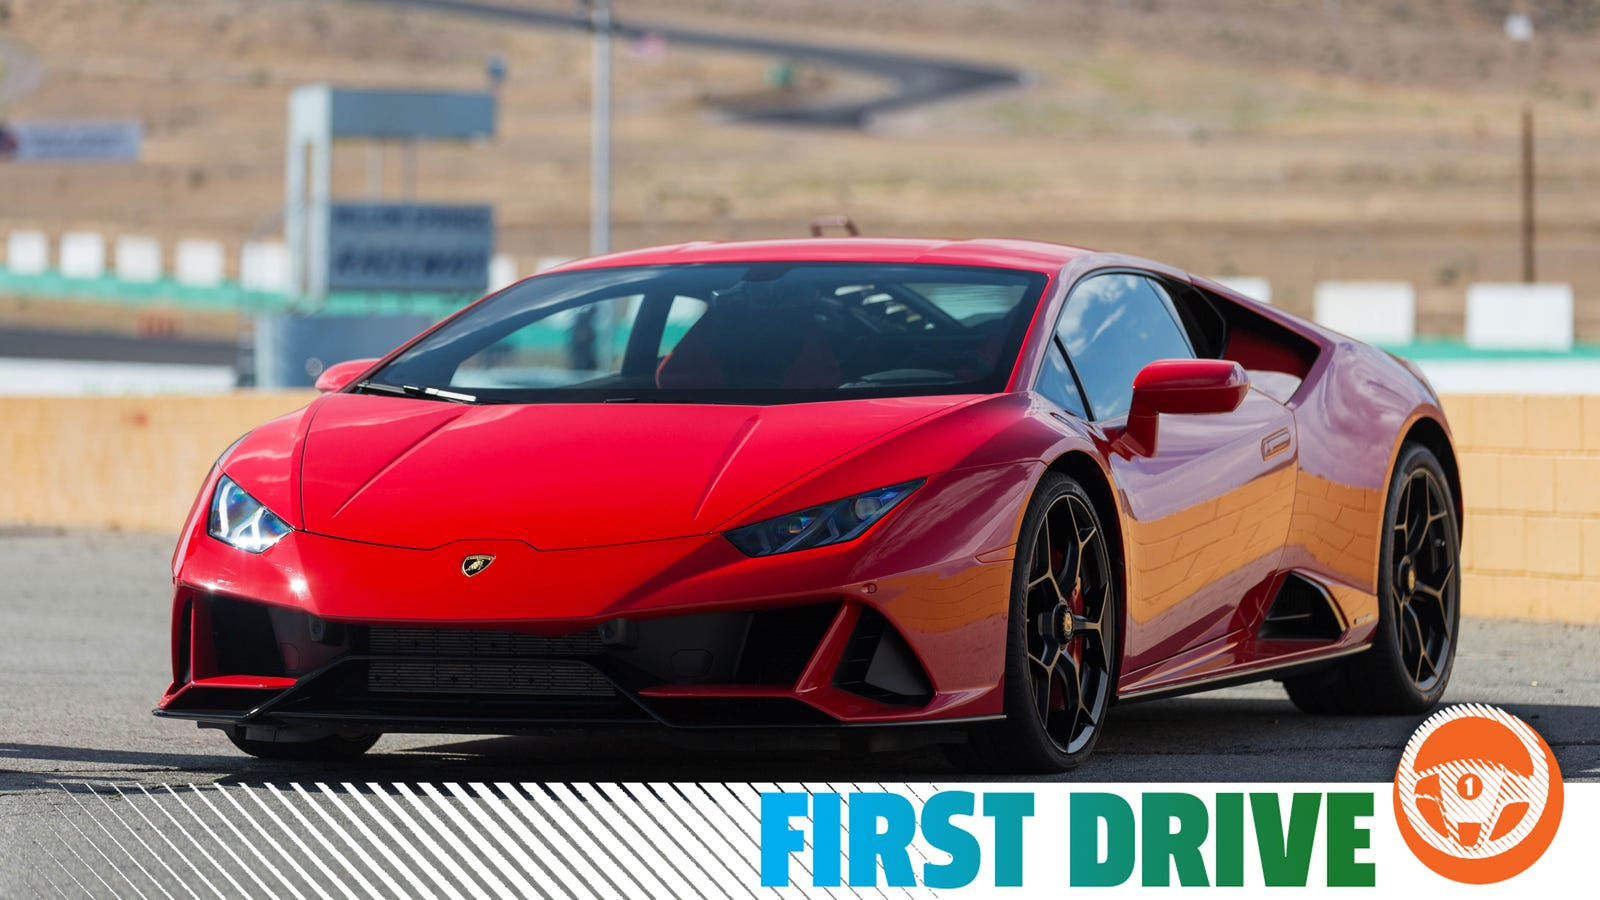 2020 Lamborghini Huracan Evo Bow Down To Your V10 Lord Of